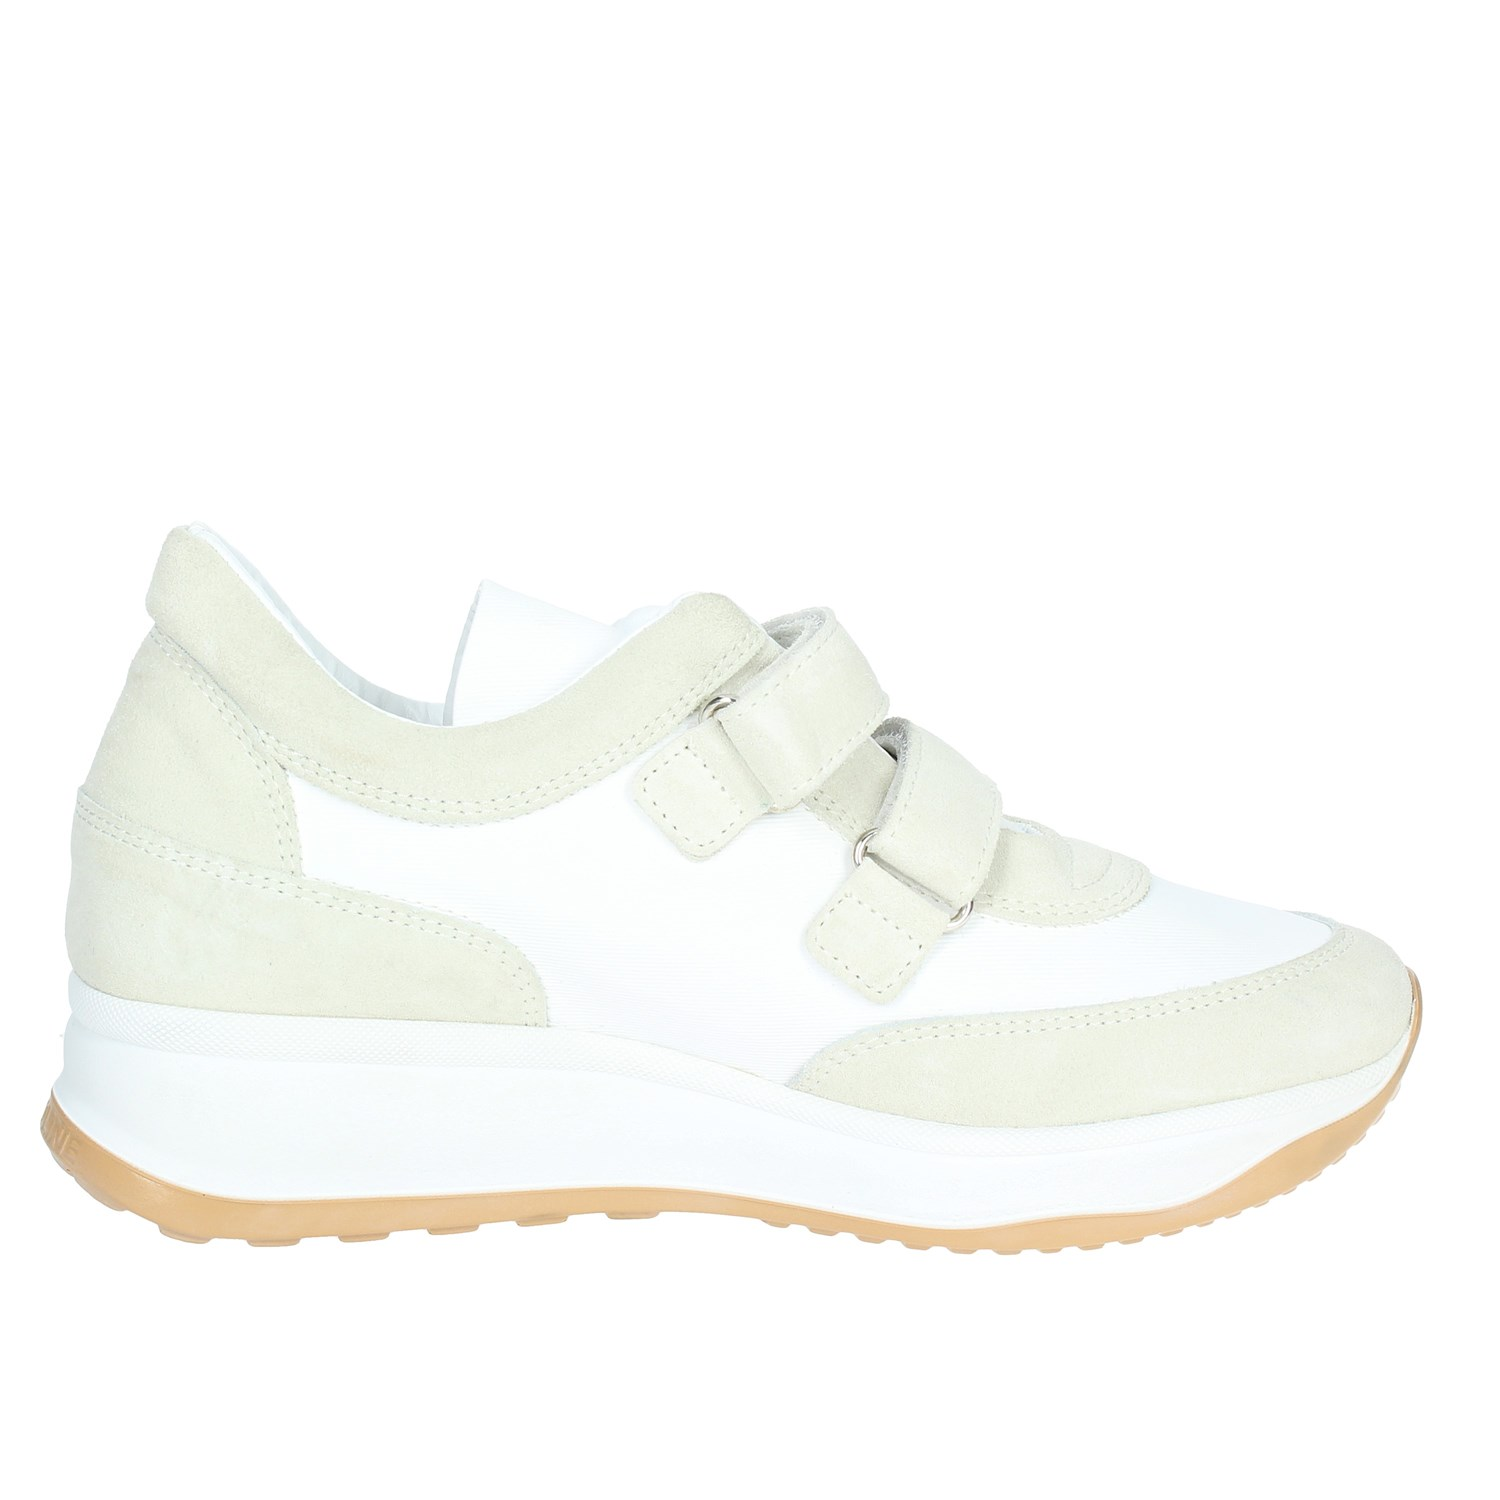 Niedrige Sneakers  Damen Agile By Rucoline  Sneakers 1313(A29) Frühjahr/Sommer c5a30e